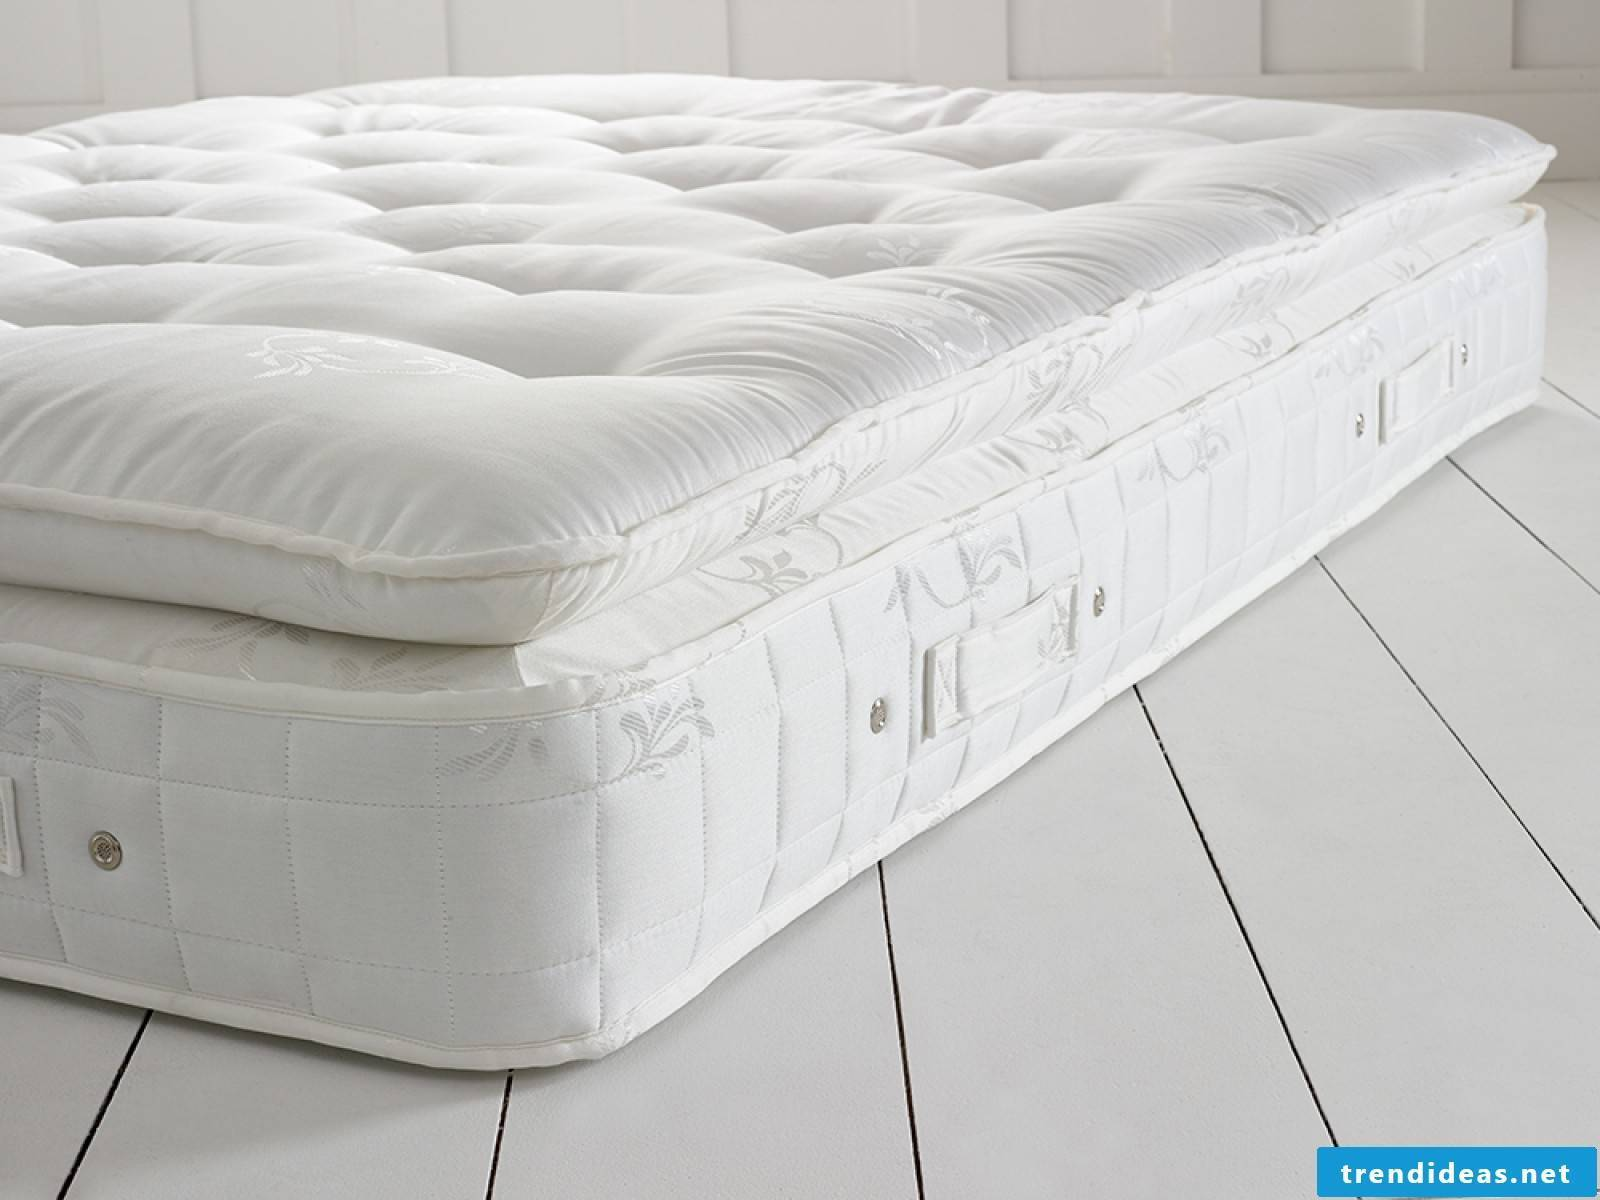 Tips for choosing the mattresses